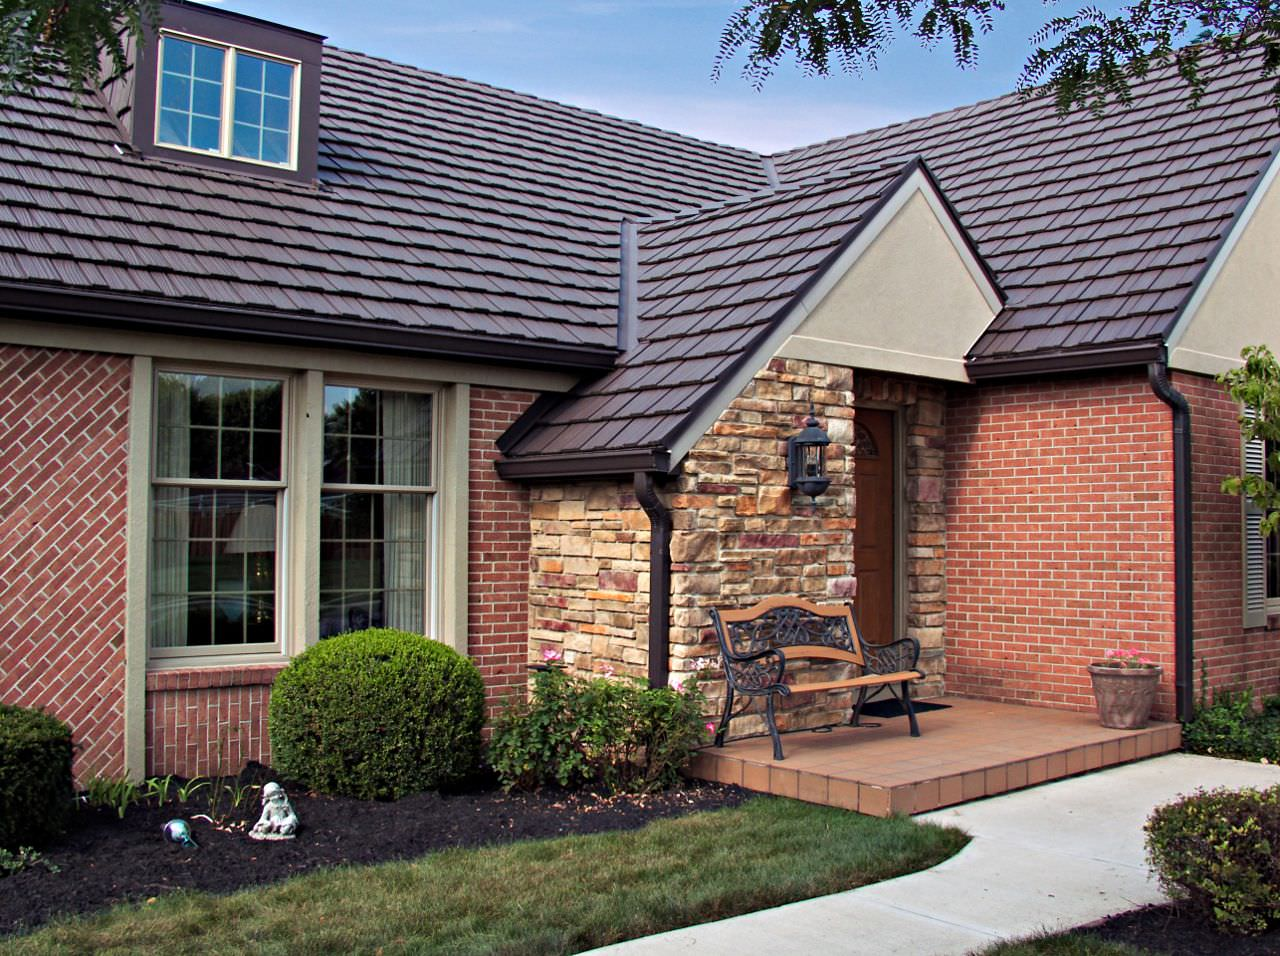 Metal roofing photos classic metal roofing systems for Homes with metal roofs photos